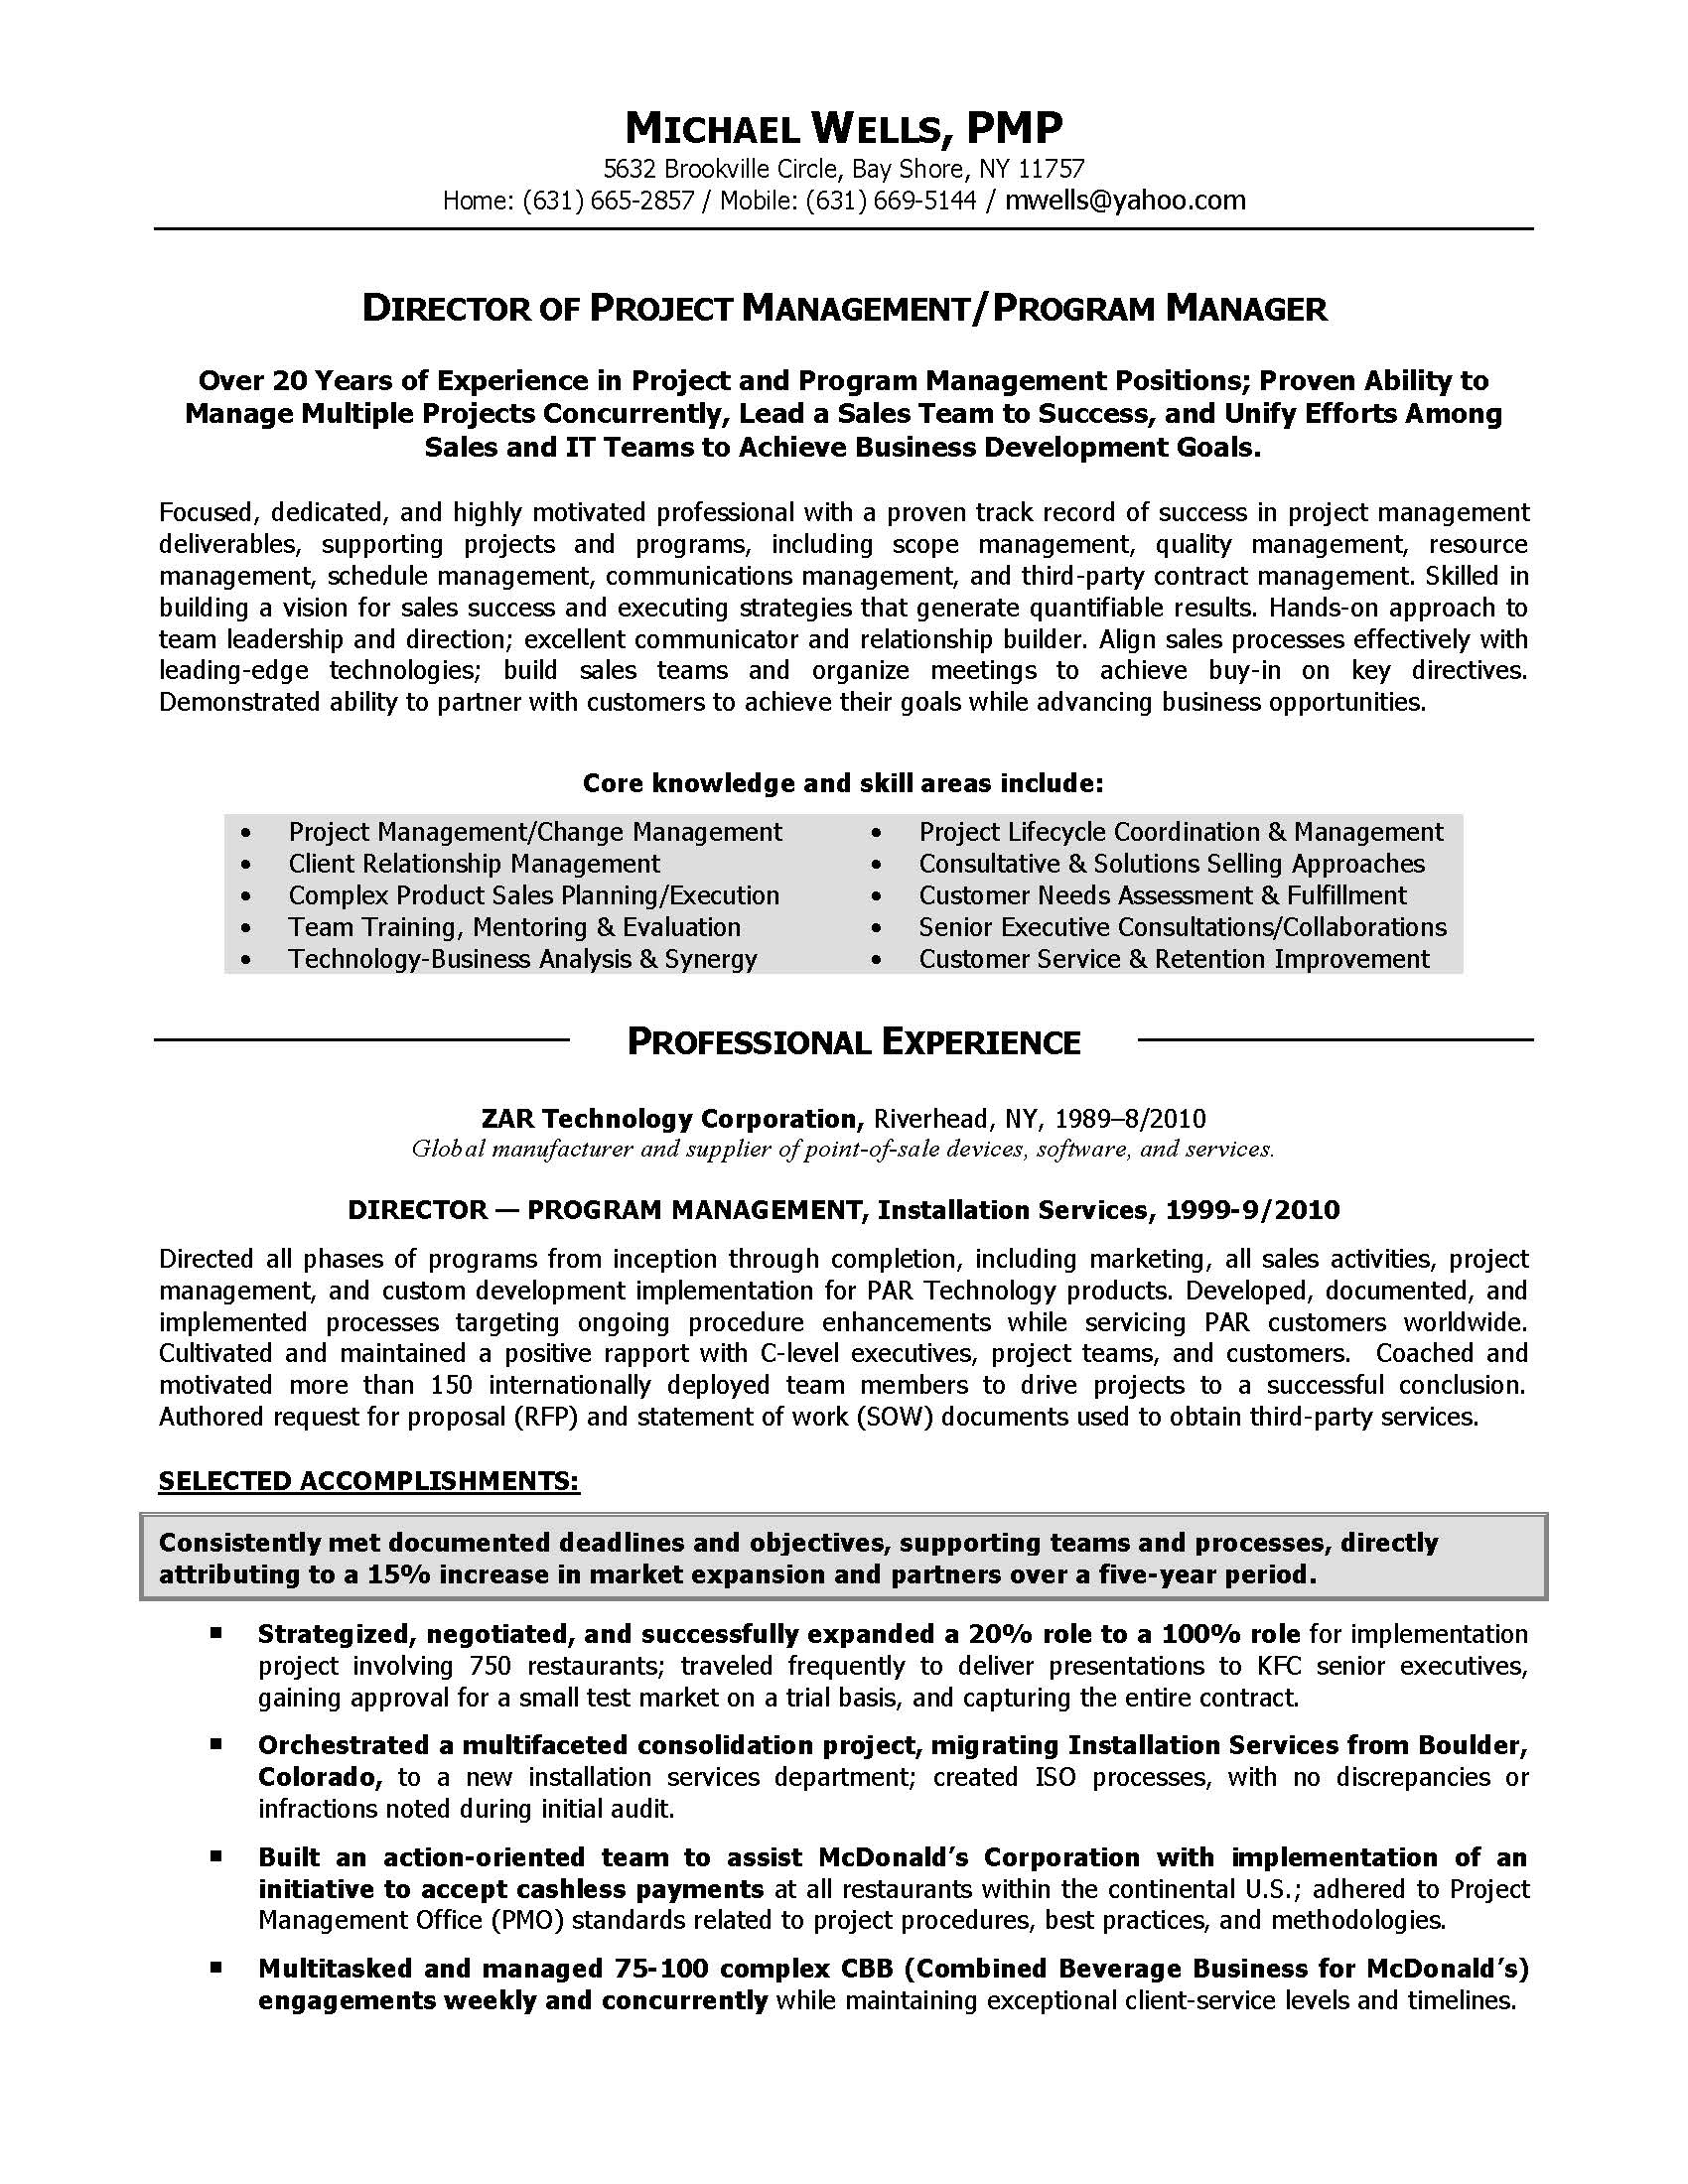 project management director resume sample provided by elite resume writing services - Resume Samples Project Manager